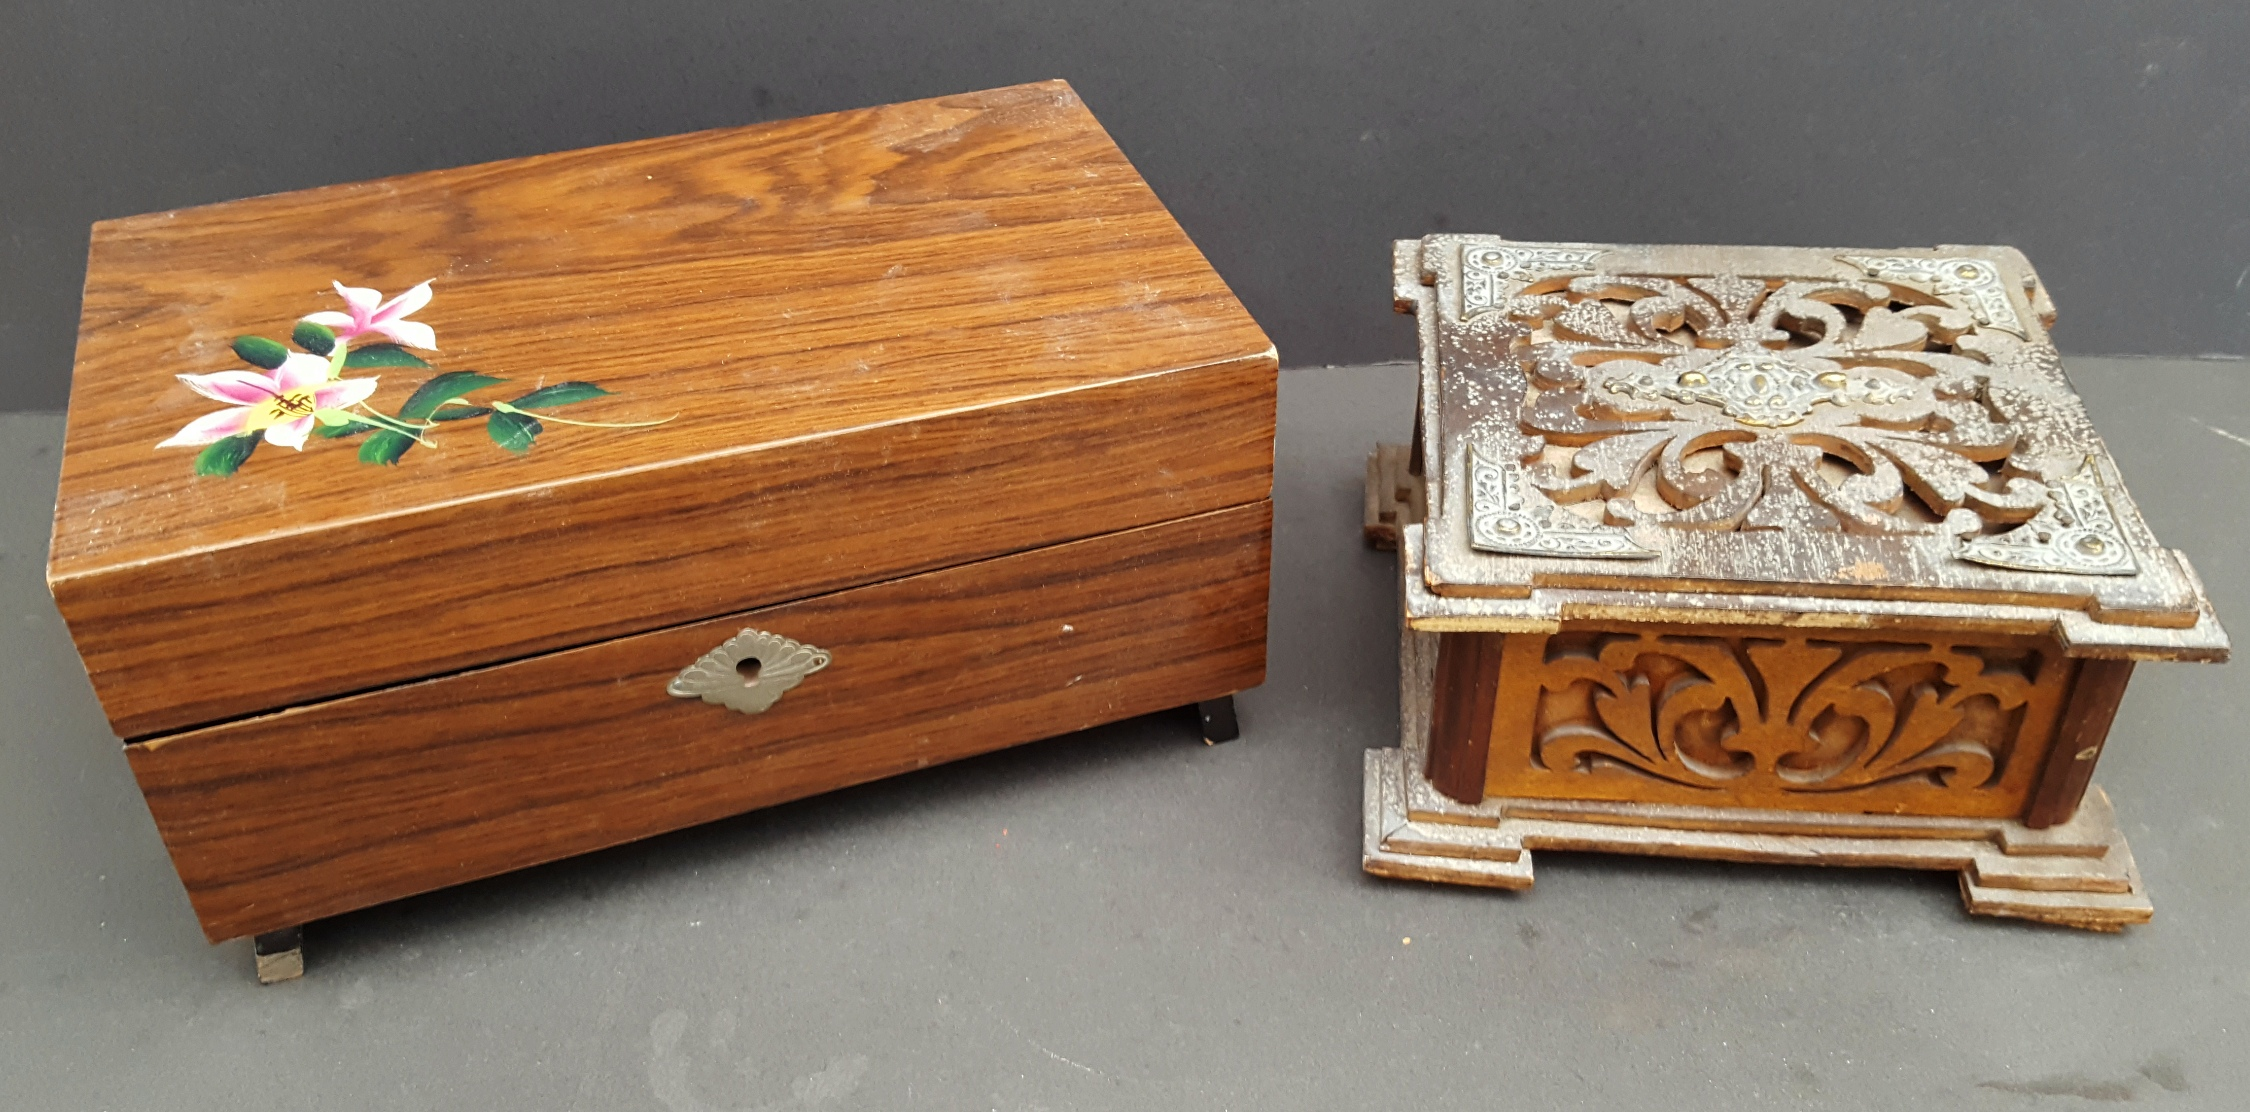 Lot 38 - Vintage Retro 2 x Jewellery Box 1 Musical NO RESERVE